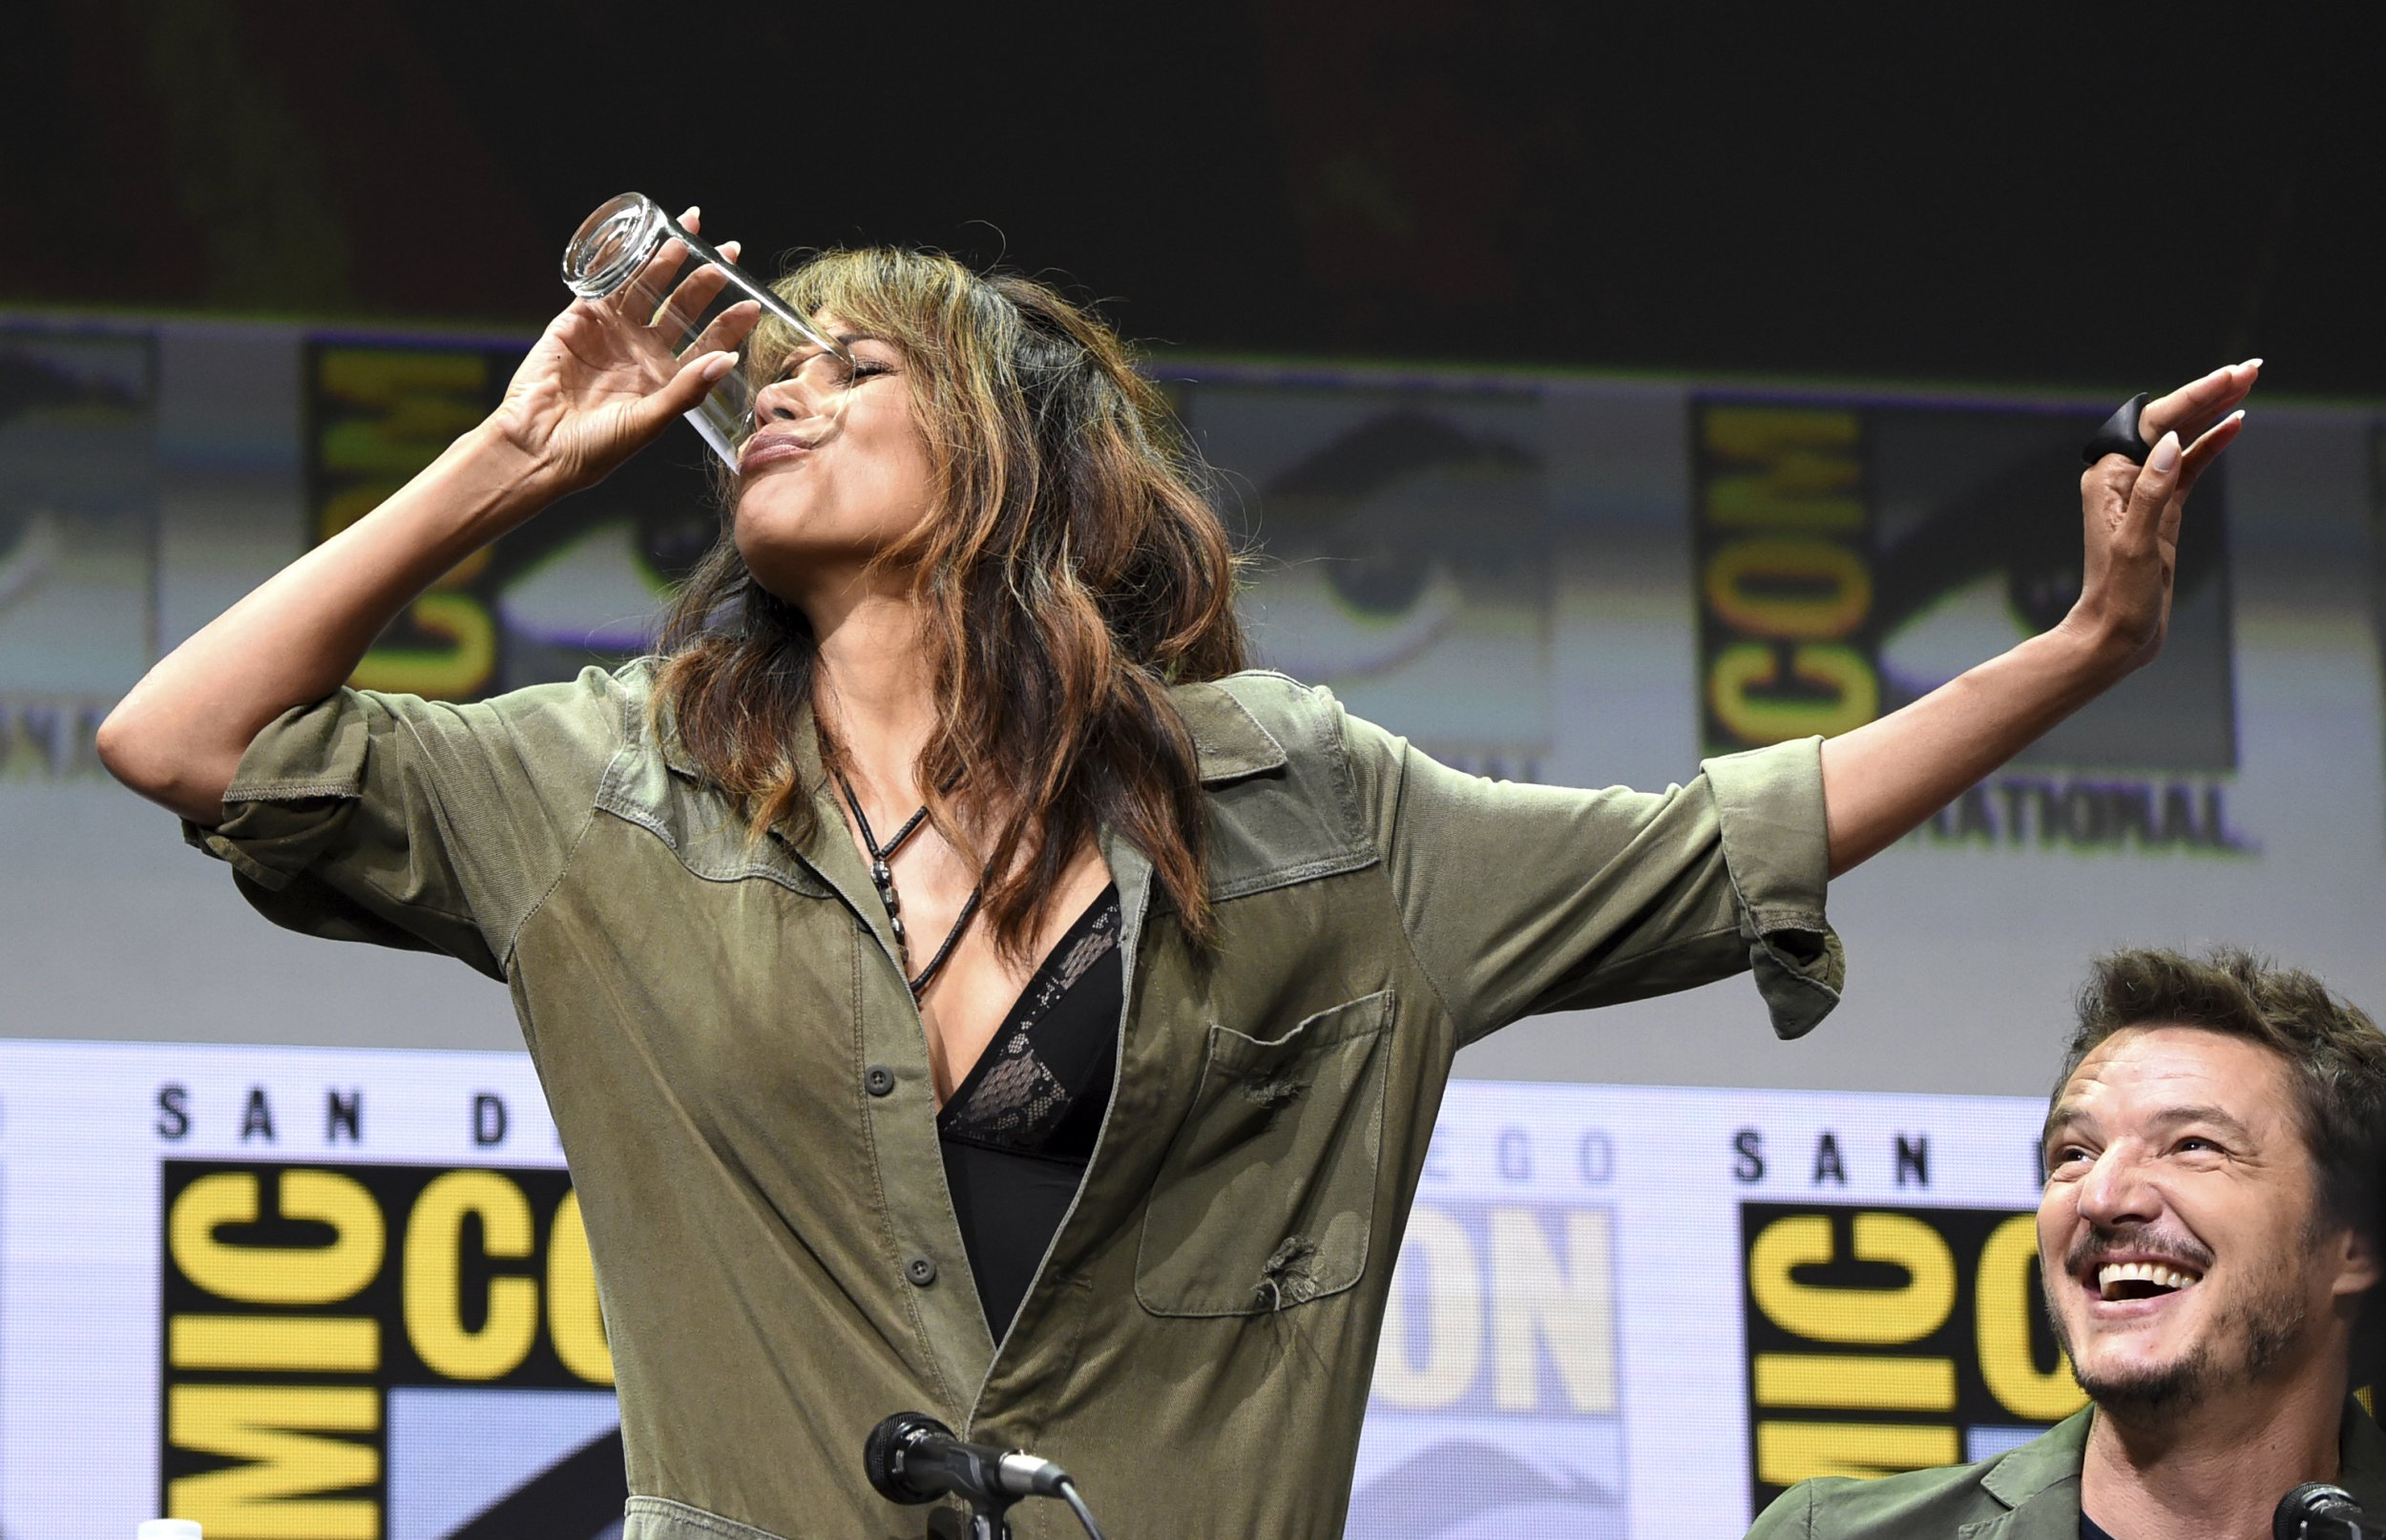 Halle Berry crushes all those pregnancy rumours by downing a lot of whisky at Comic-con